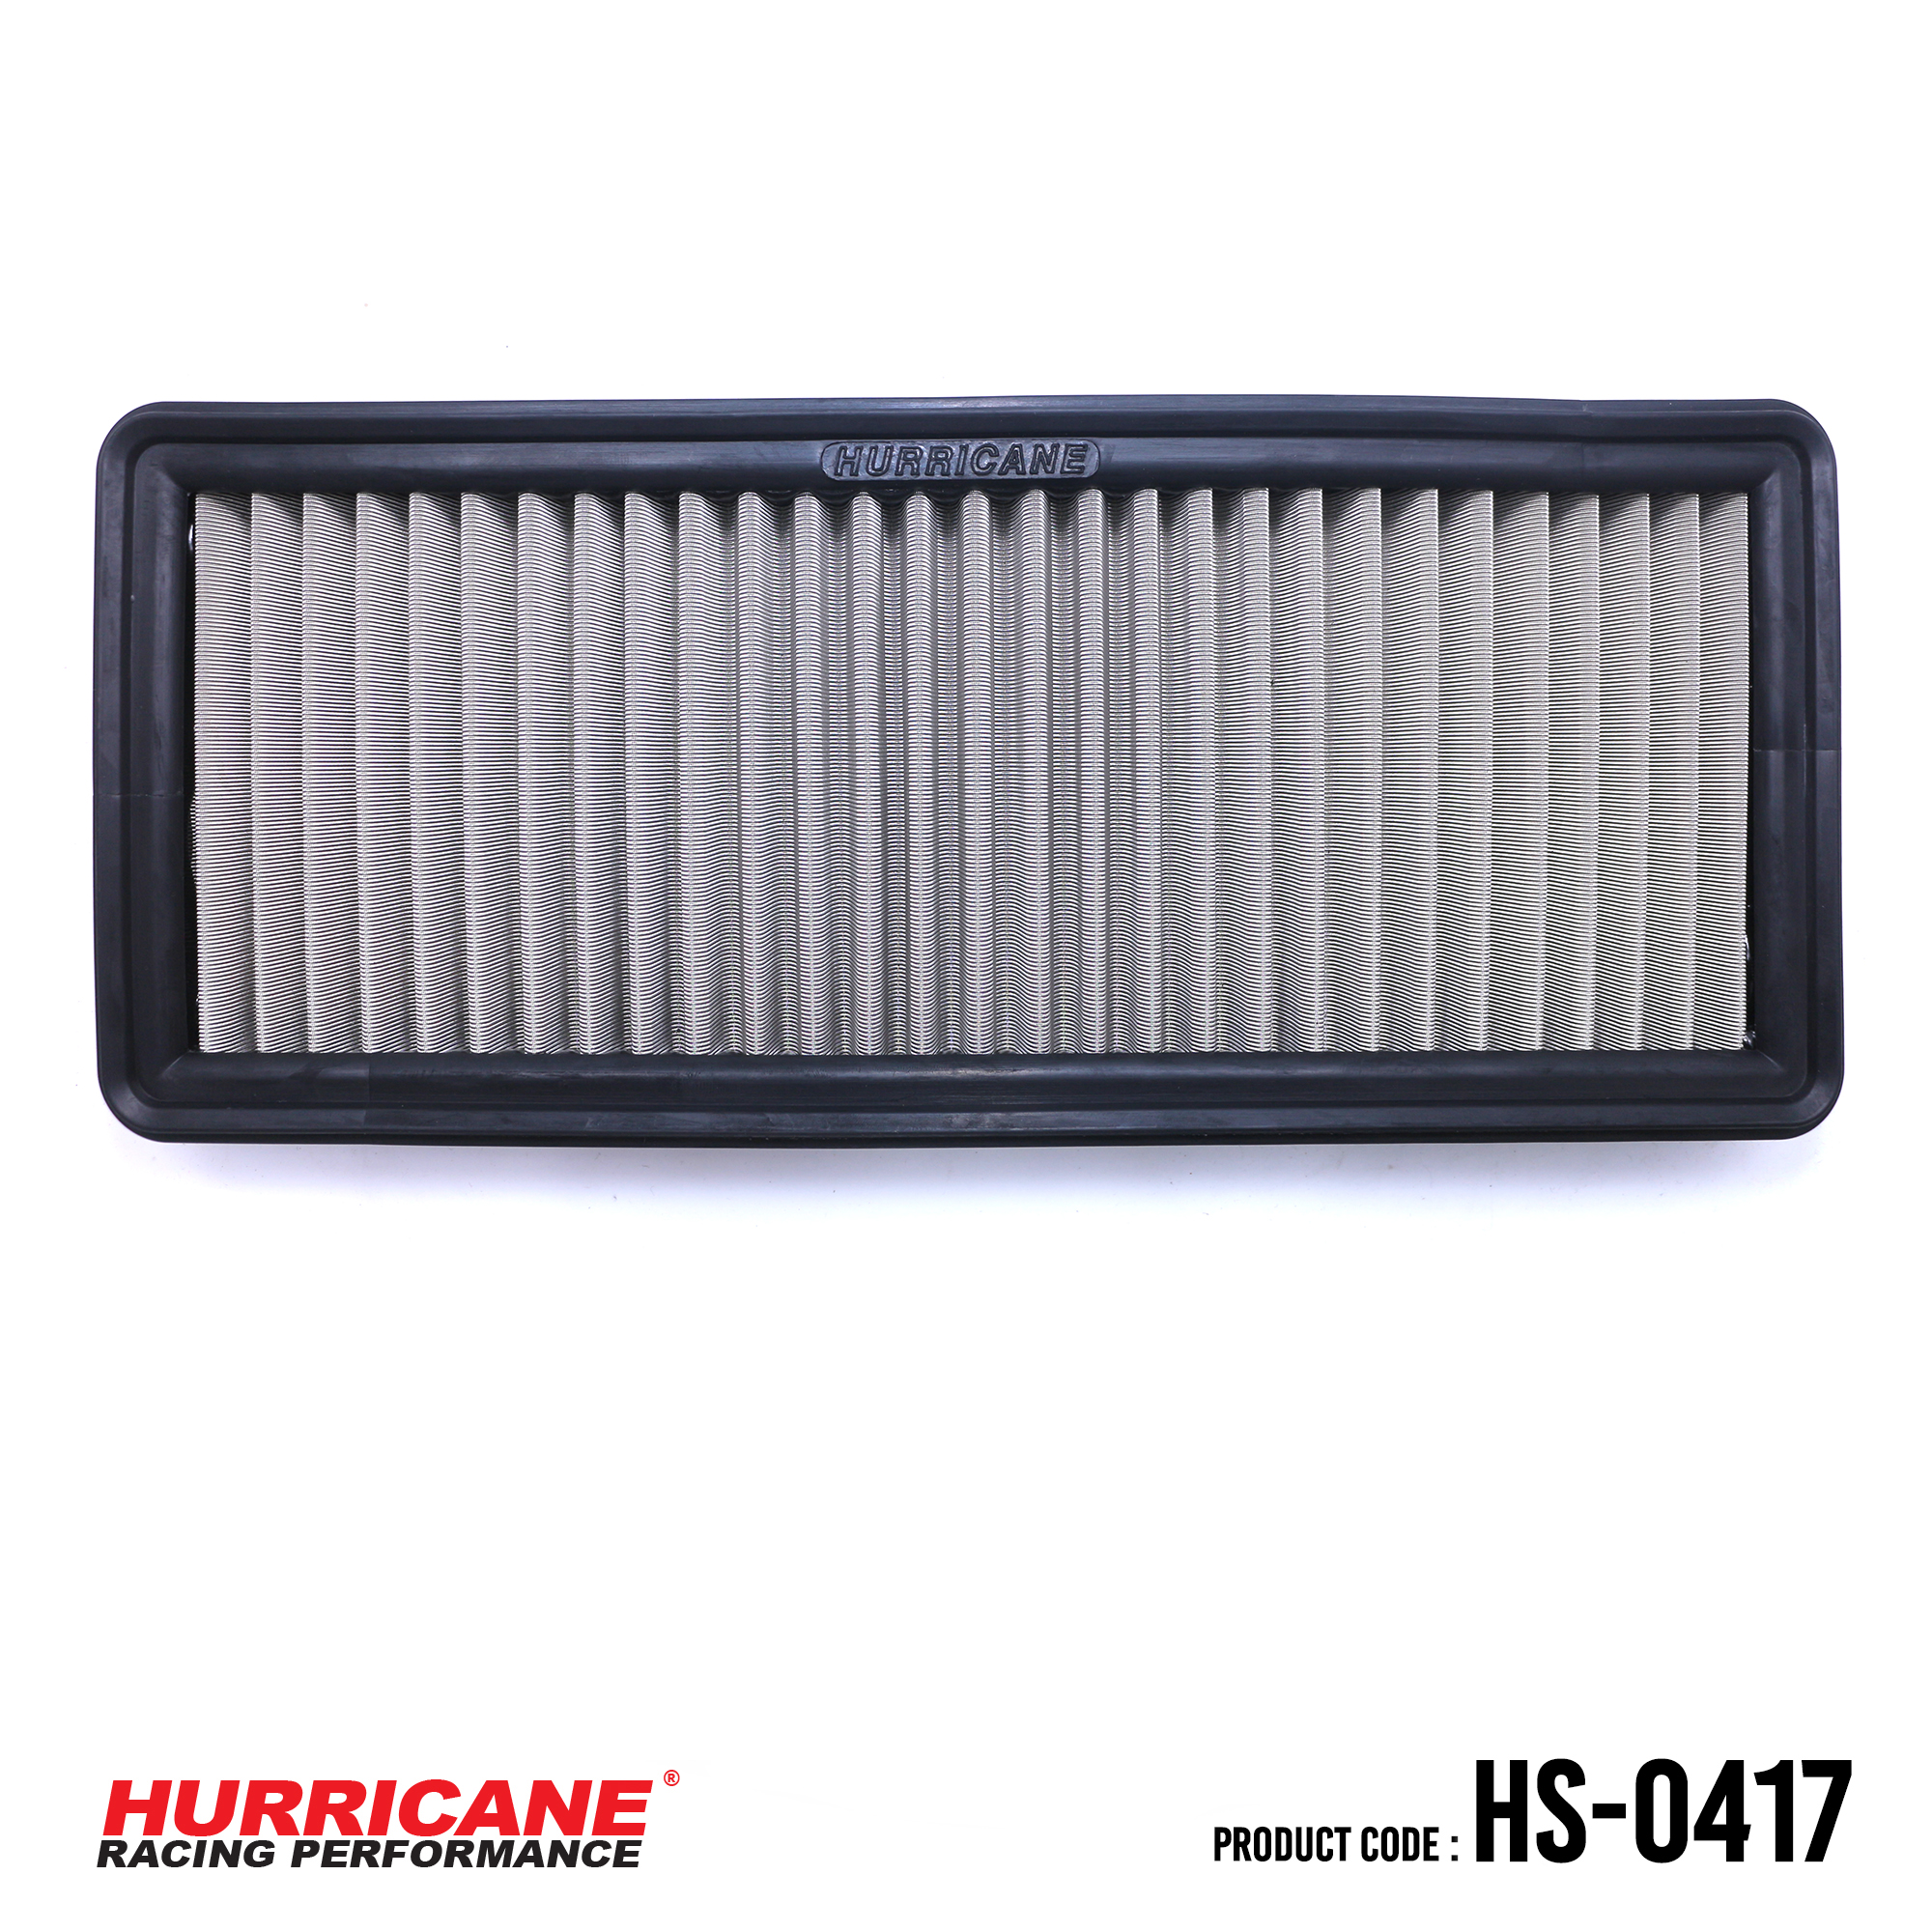 HURRICANE STAINLESS STEEL AIR FILTER FOR HS-0417 BMW